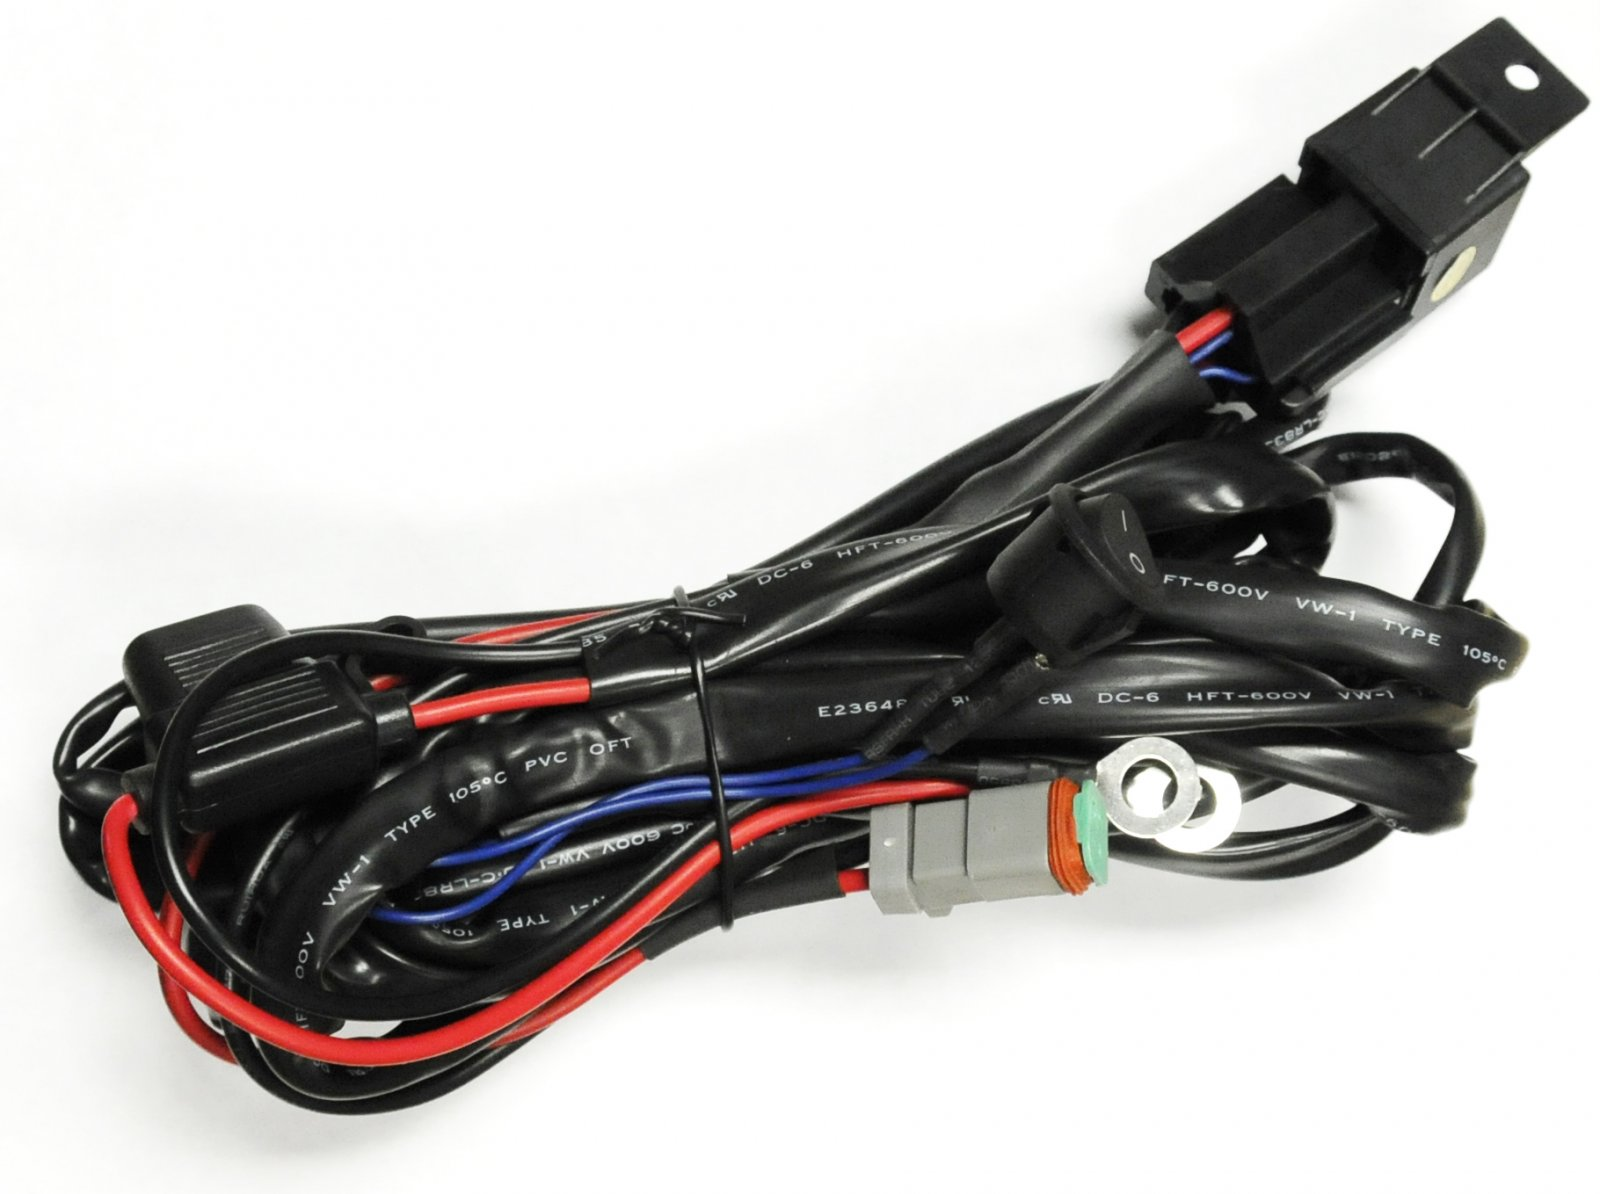 Universal Wiring Harness Includes On Off Switch Relays Fuse Connector Types Terminal Connectors